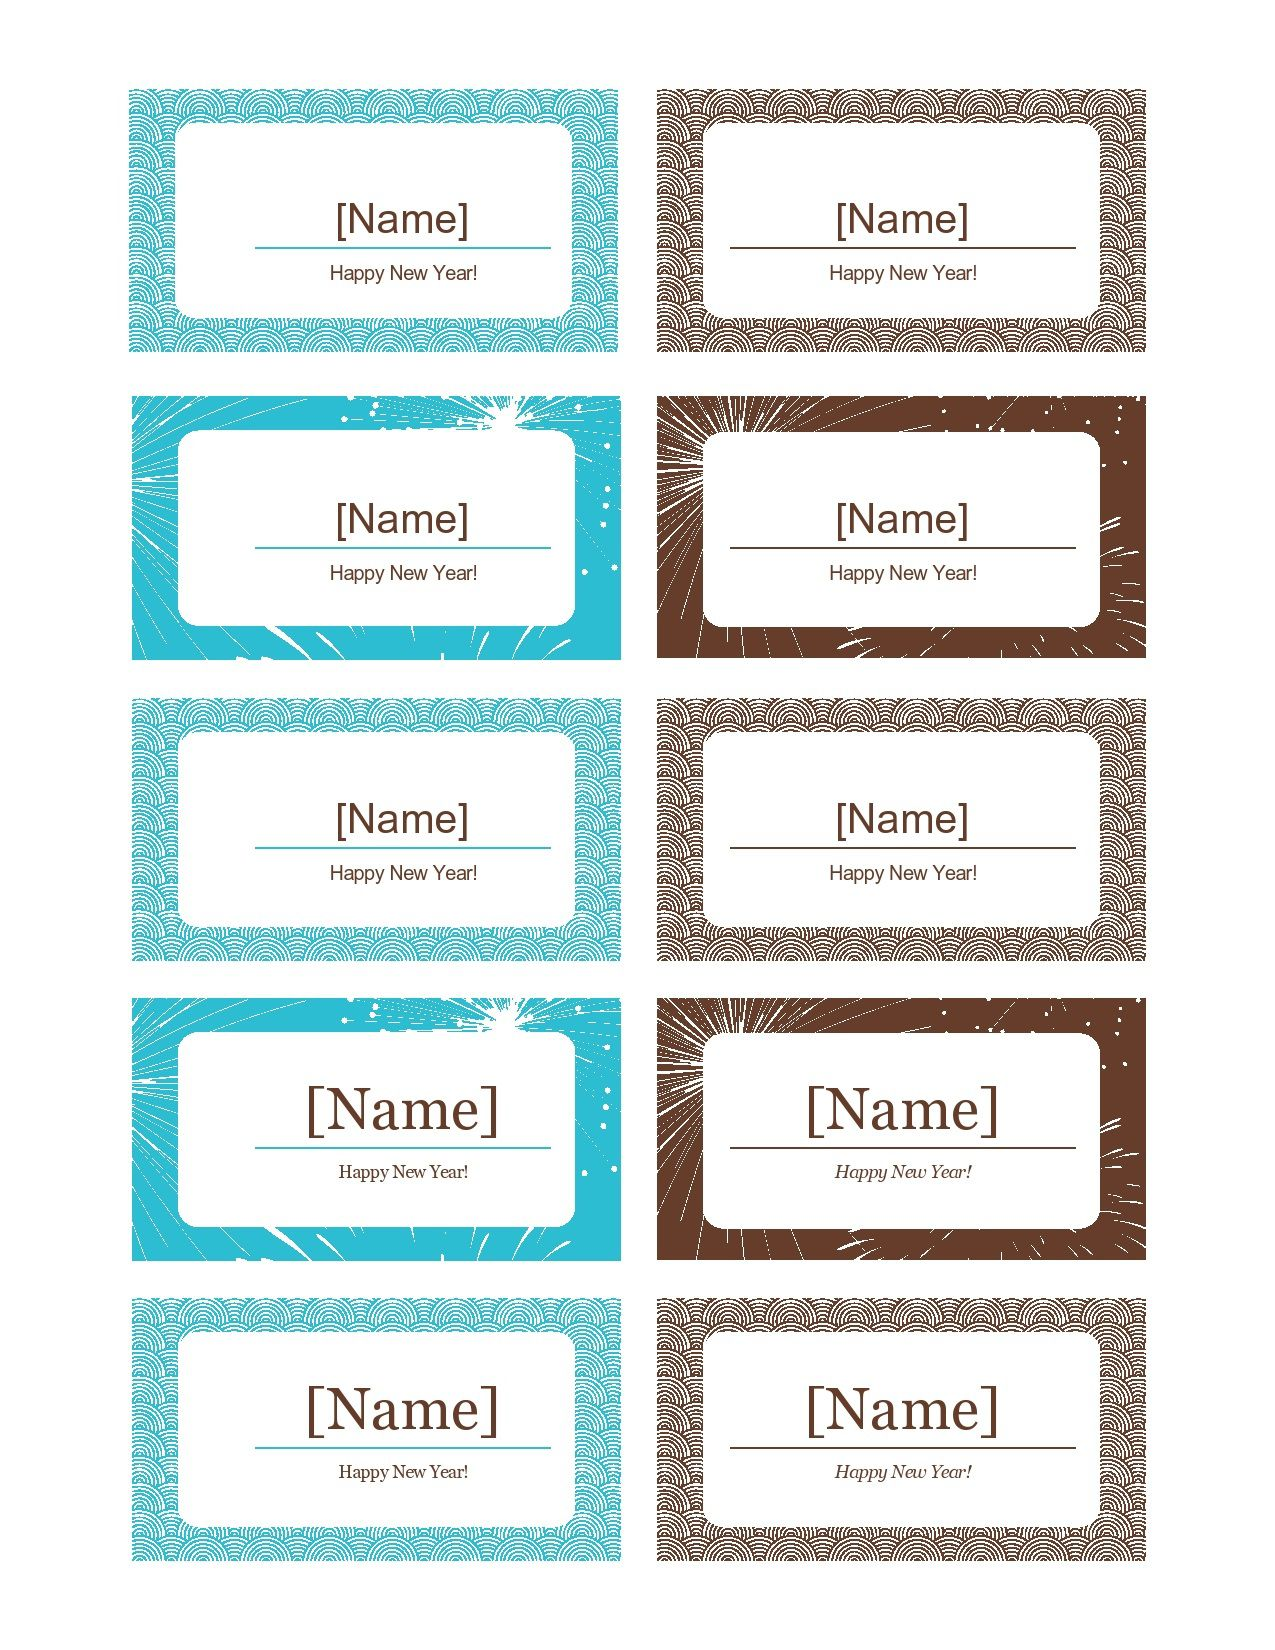 006 Stunning Name Place Card Template Free Download Picture  Psd VectorFull